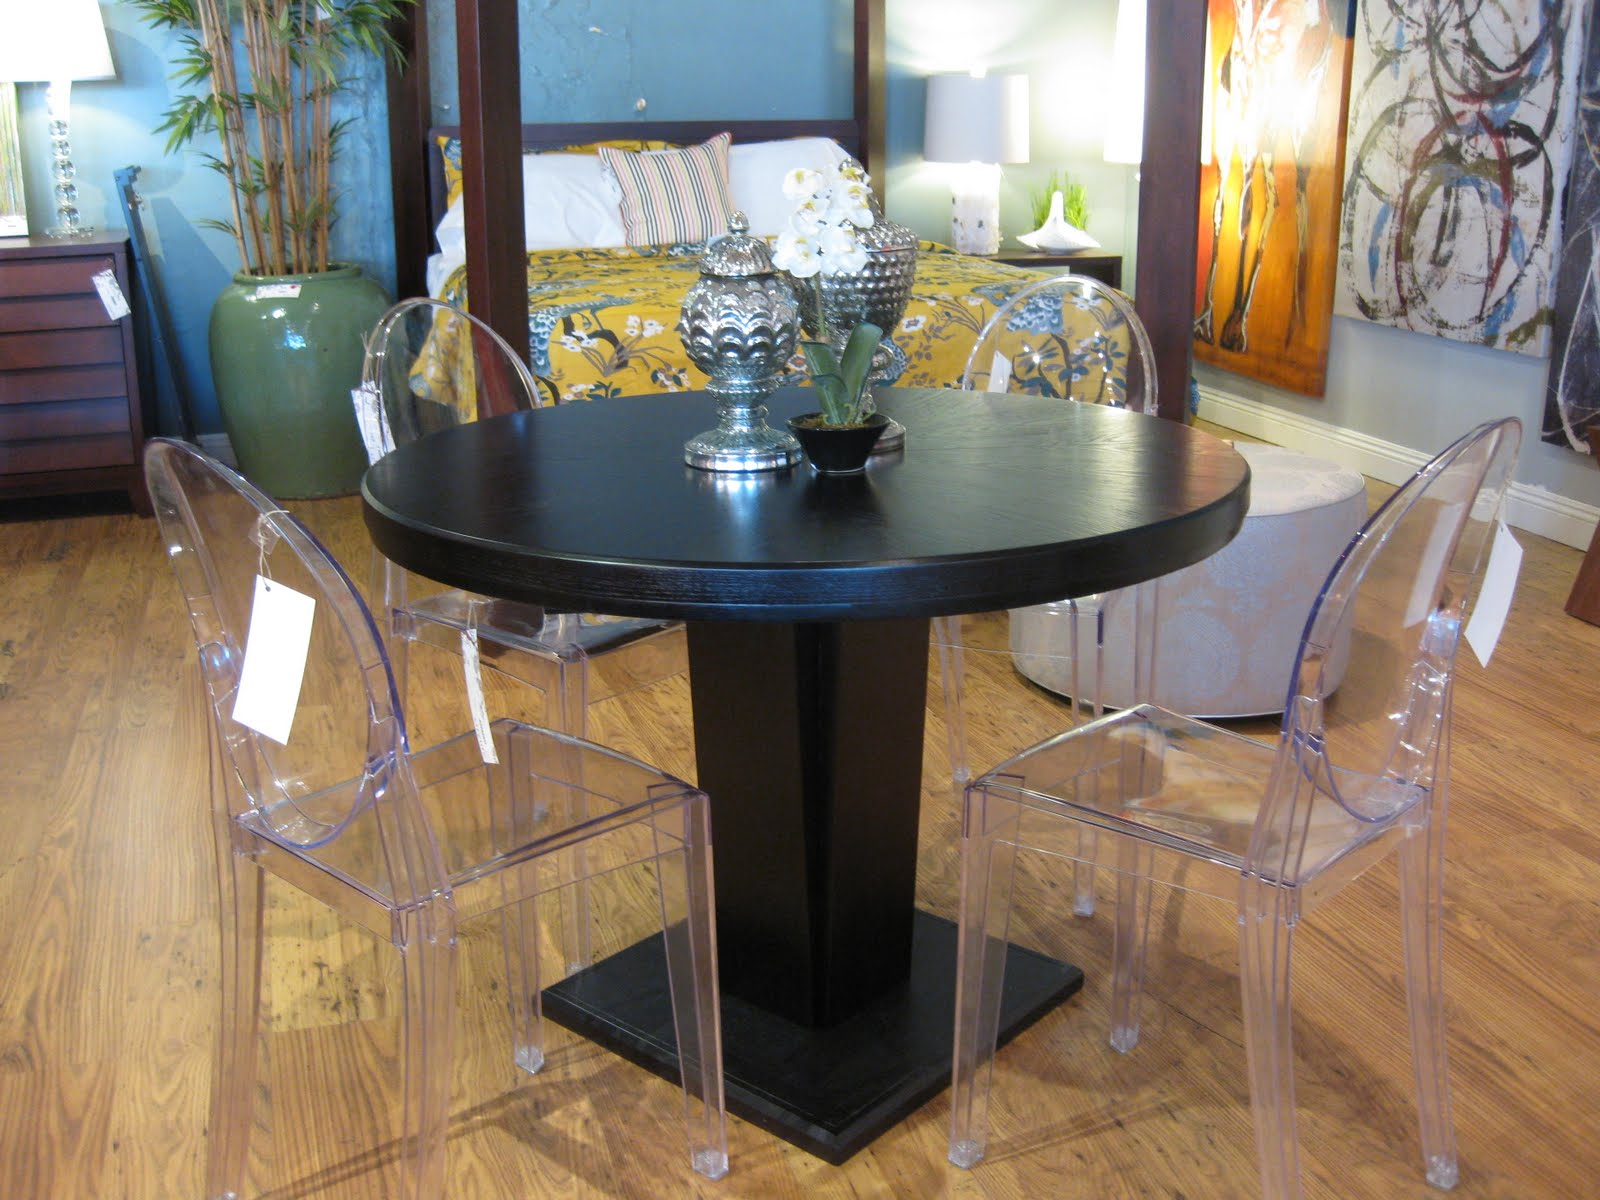 Corvallis Extension Dining Table 1199 Made From Solid Indian Shesham Wood Chairs 199 Each